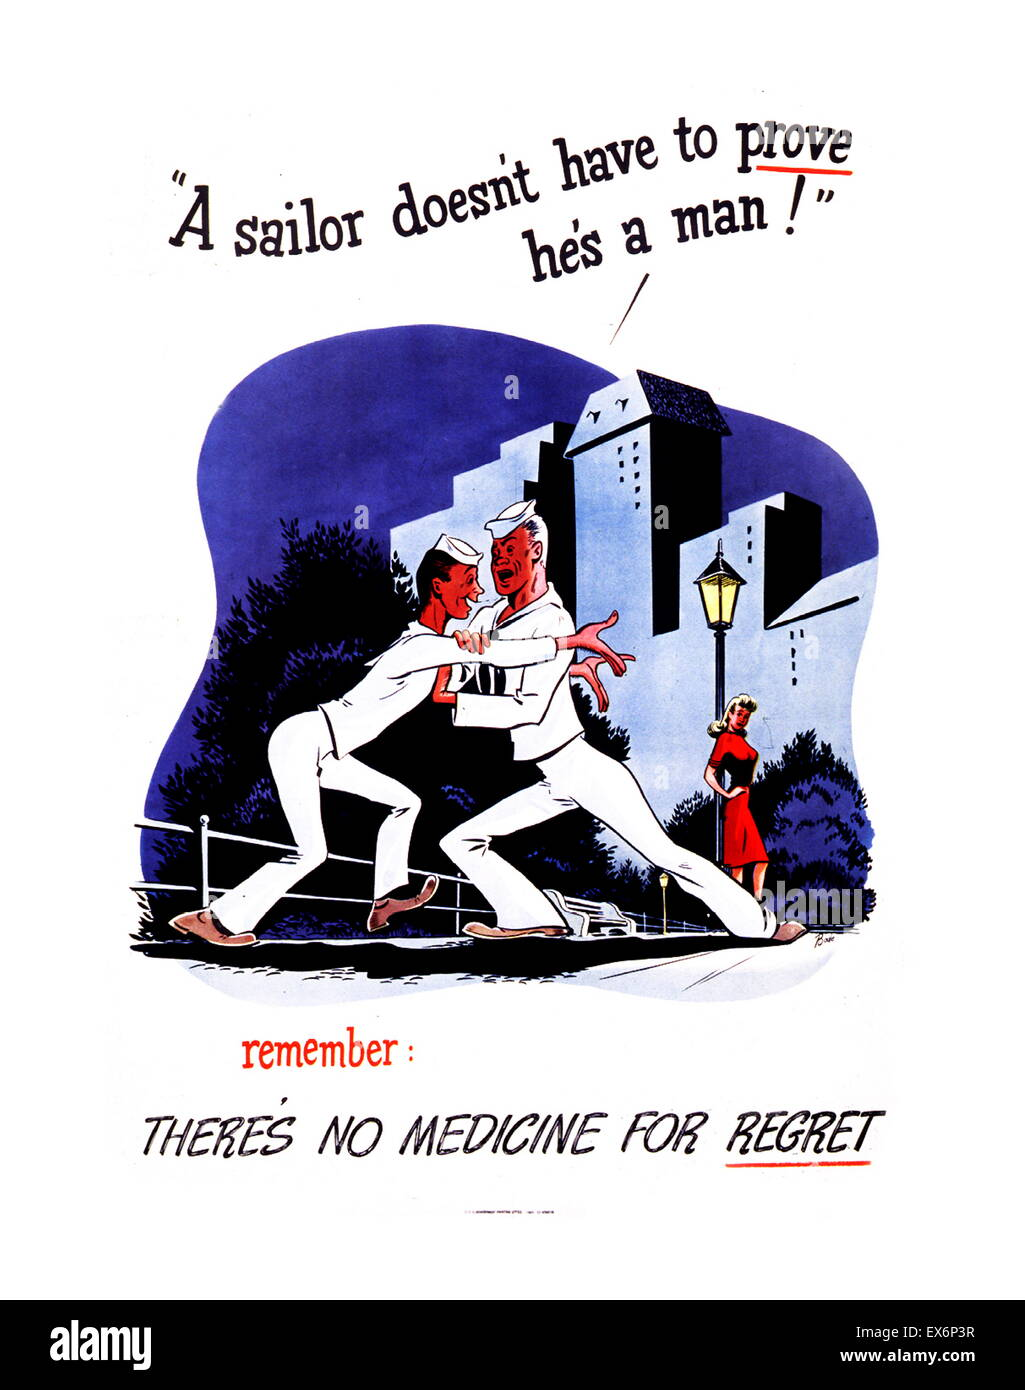 A Sailor Doesn't Have to Prove He's a Man! 1942 World war two, american Public health poster to raise awareness - Stock Image